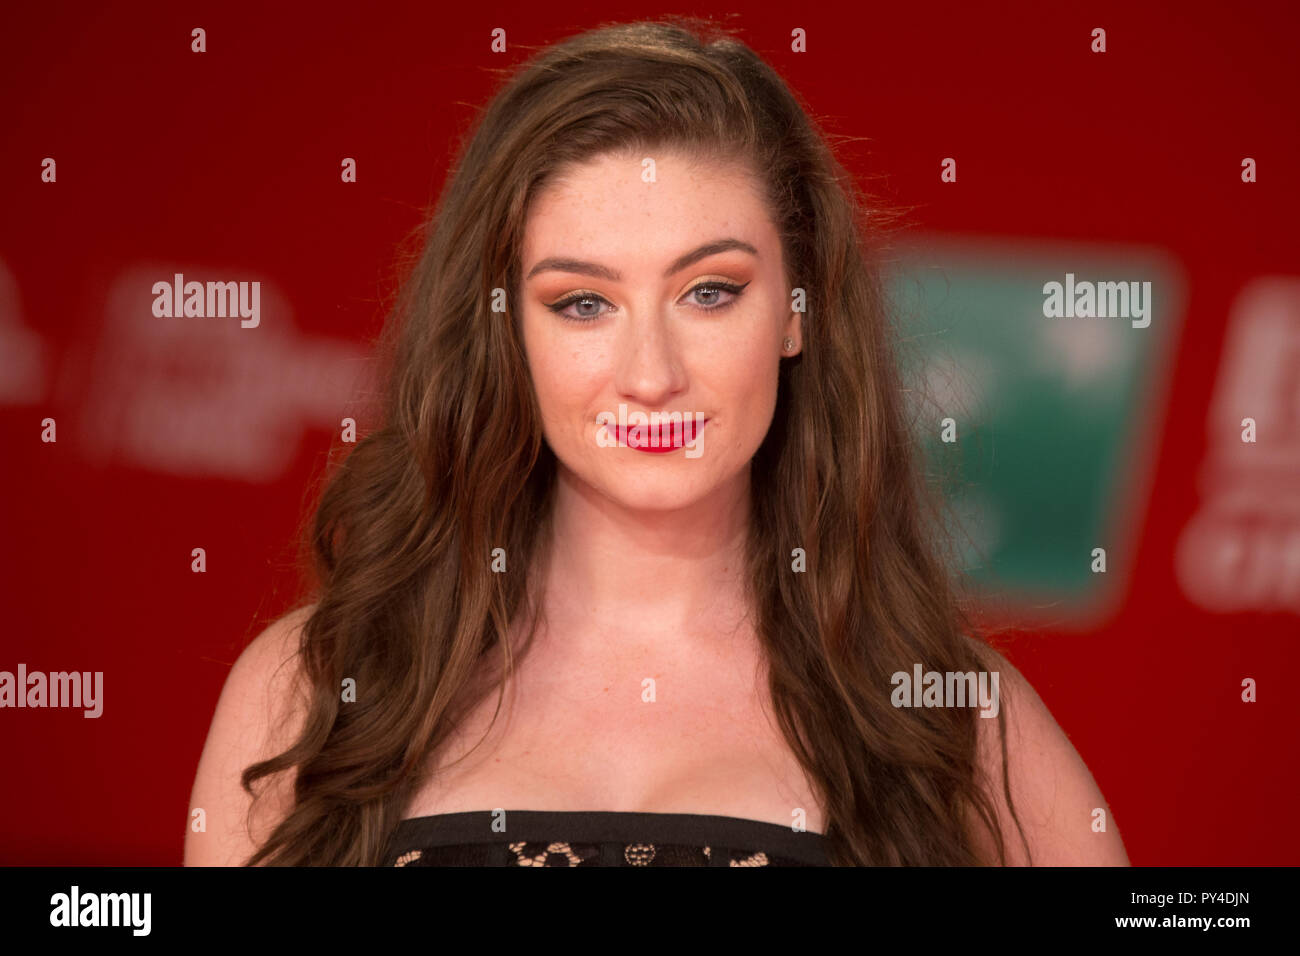 Roma, Italy. 24th Oct, 2018. Red Carpet with English actress and media personality Amber Doig-Thorne at the Rome Film Fest Credit: Matteo Nardone/Pacific Press/Alamy Live News - Stock Image